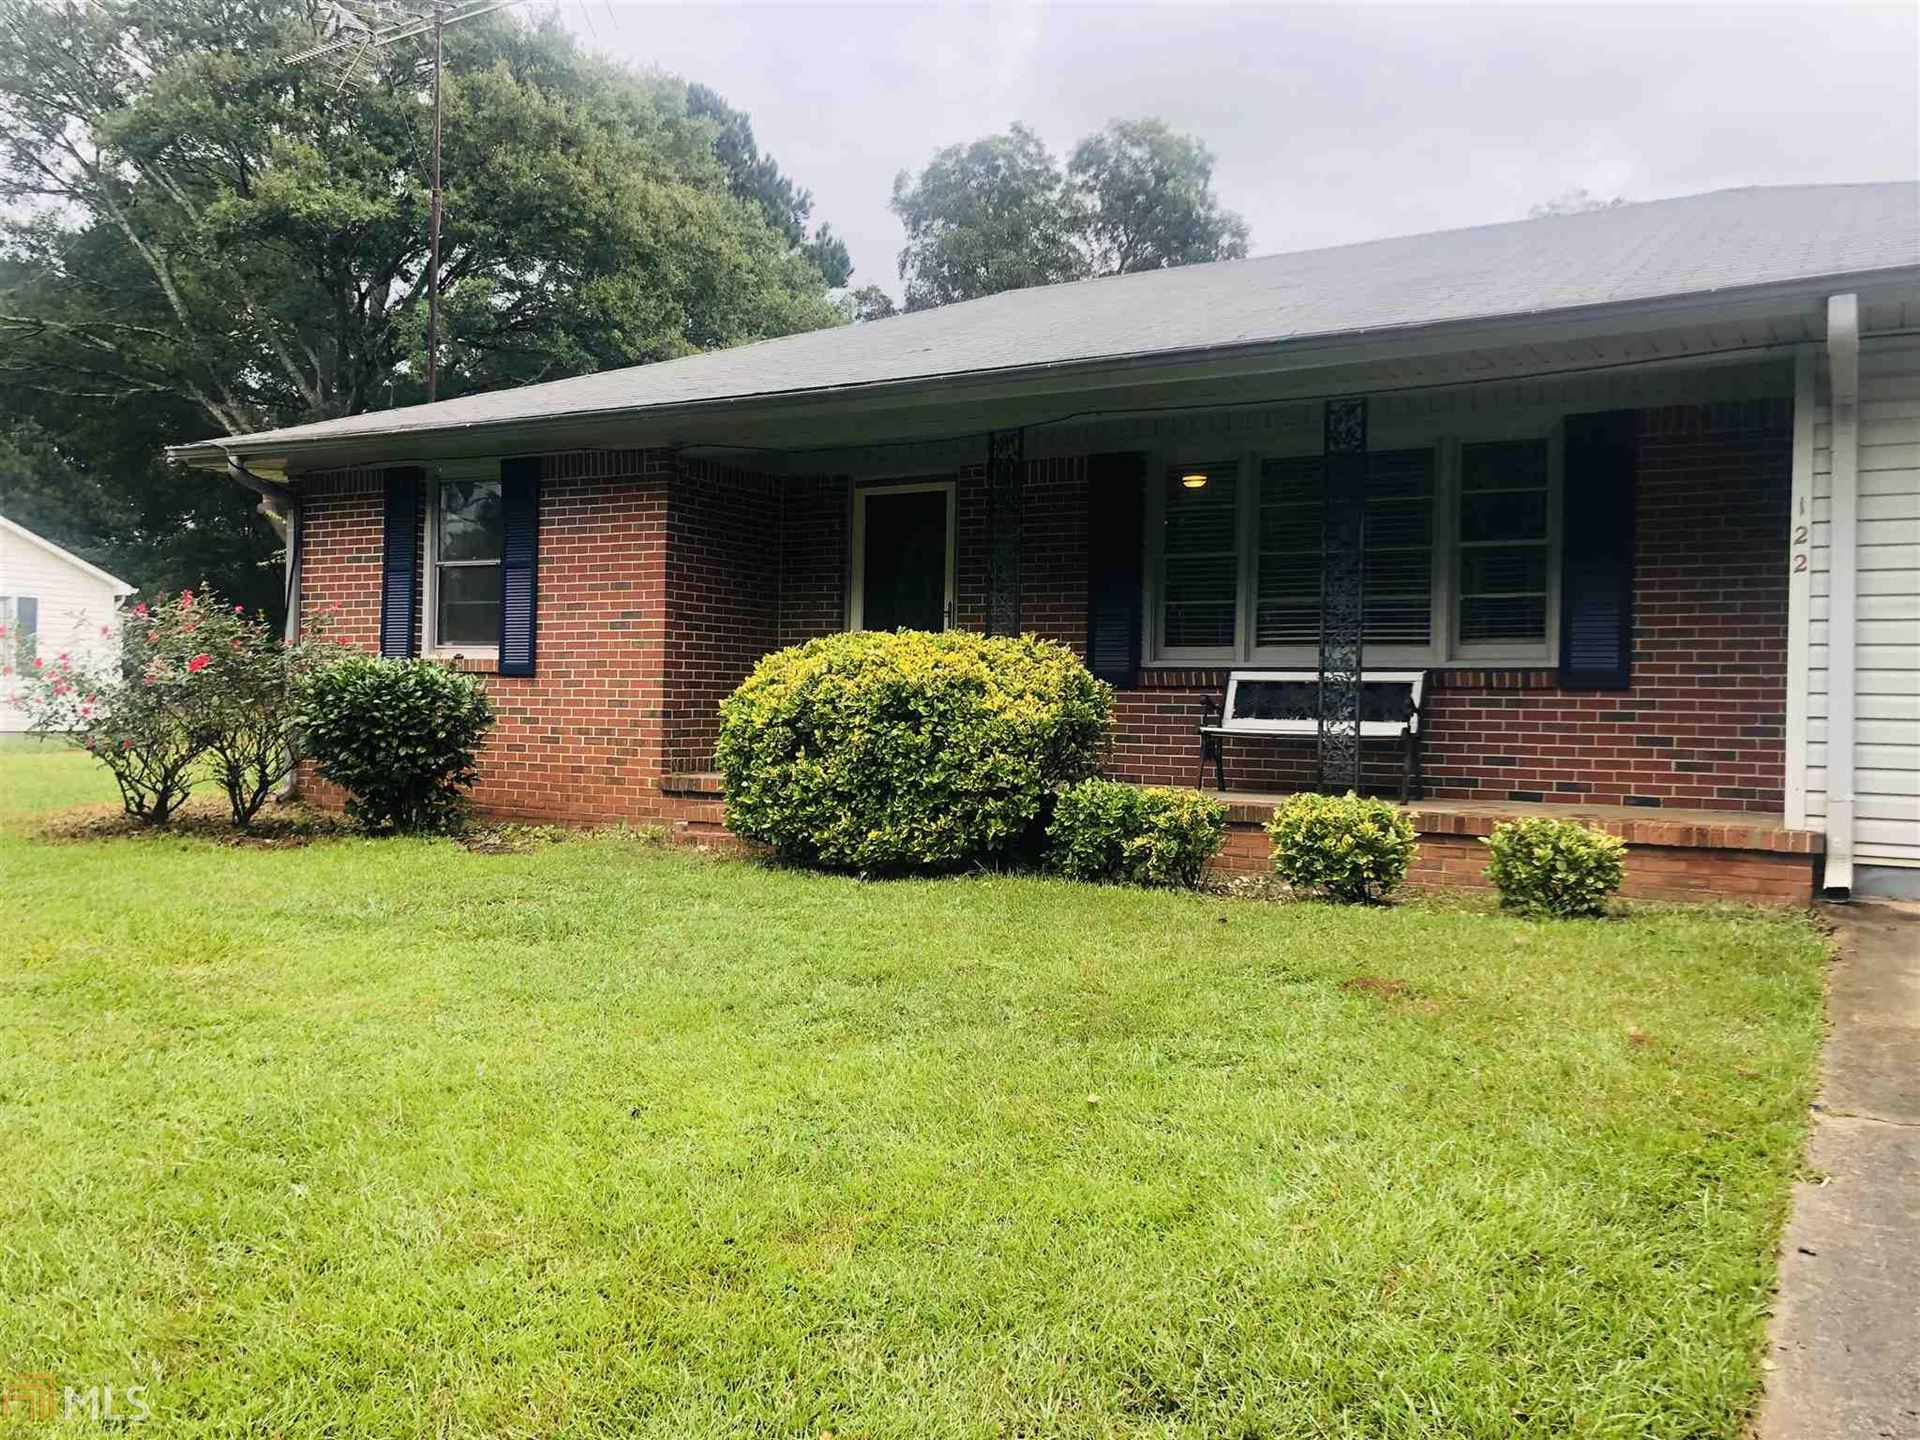 122 Second Ave, Griffin, GA 30223 - #: 8868354